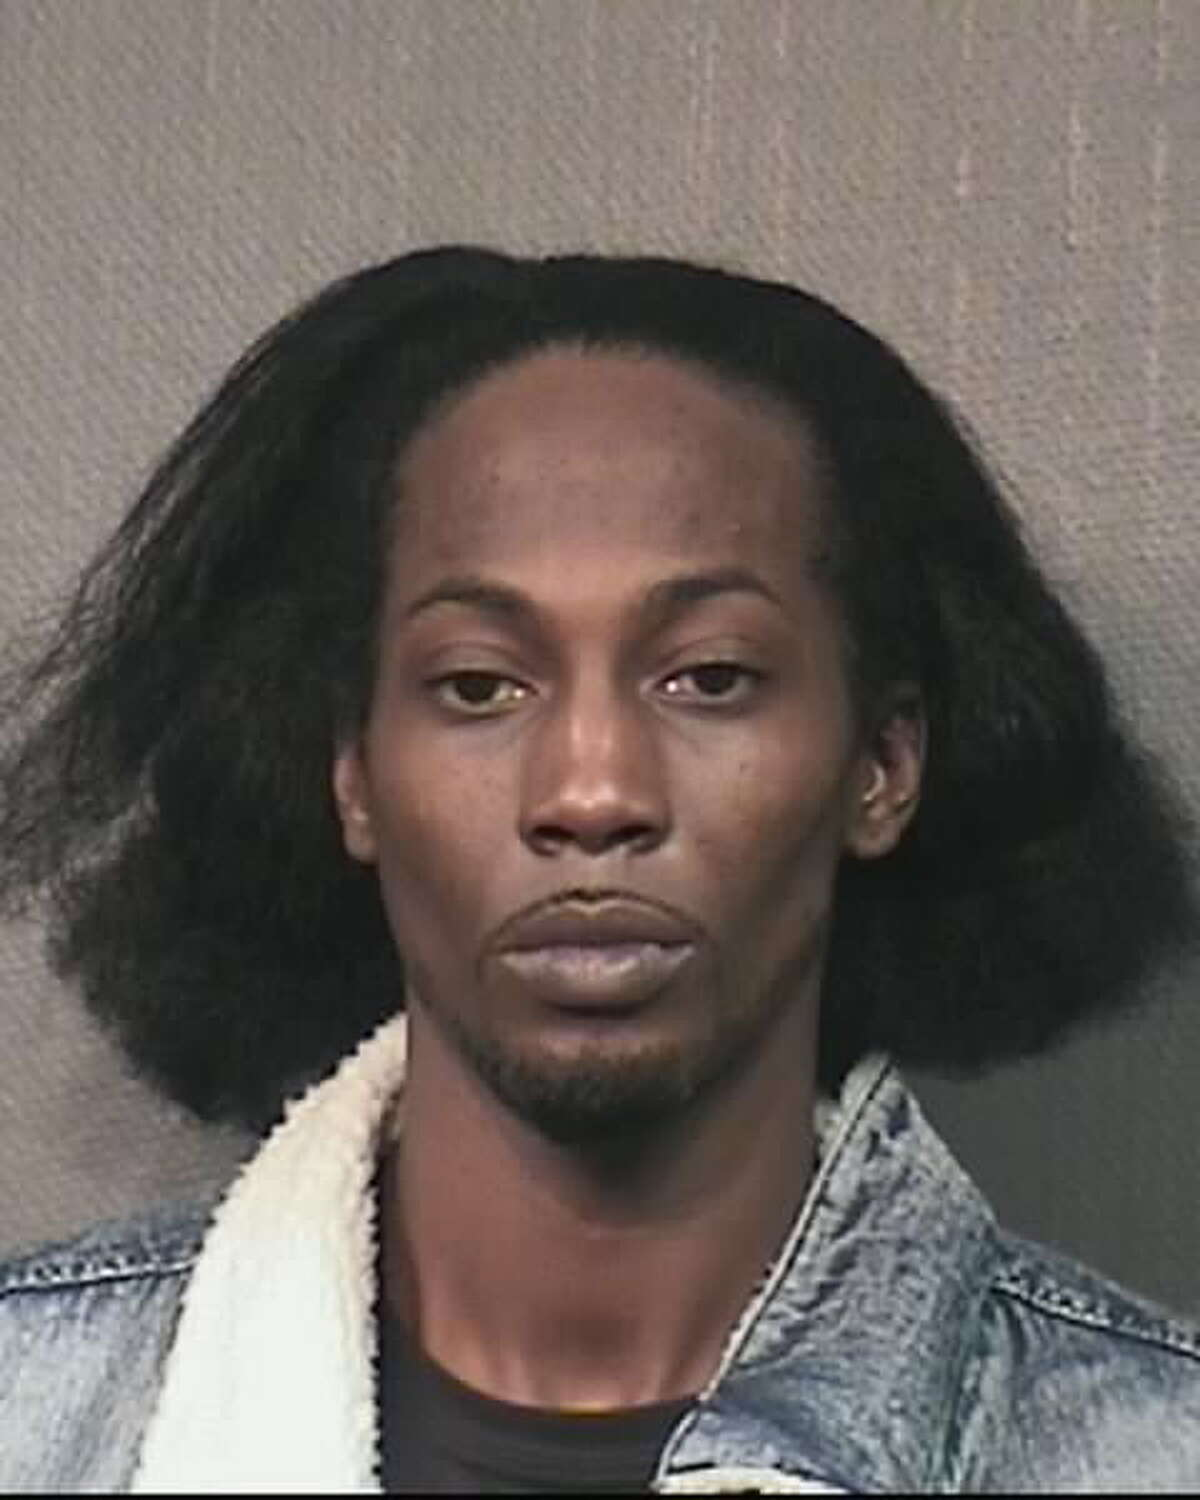 Patrick Presley was charged with misdemeanor discharge firearm within city limits for allegedly partaking in celebratory gunfire during 2018 New Year's Eve.